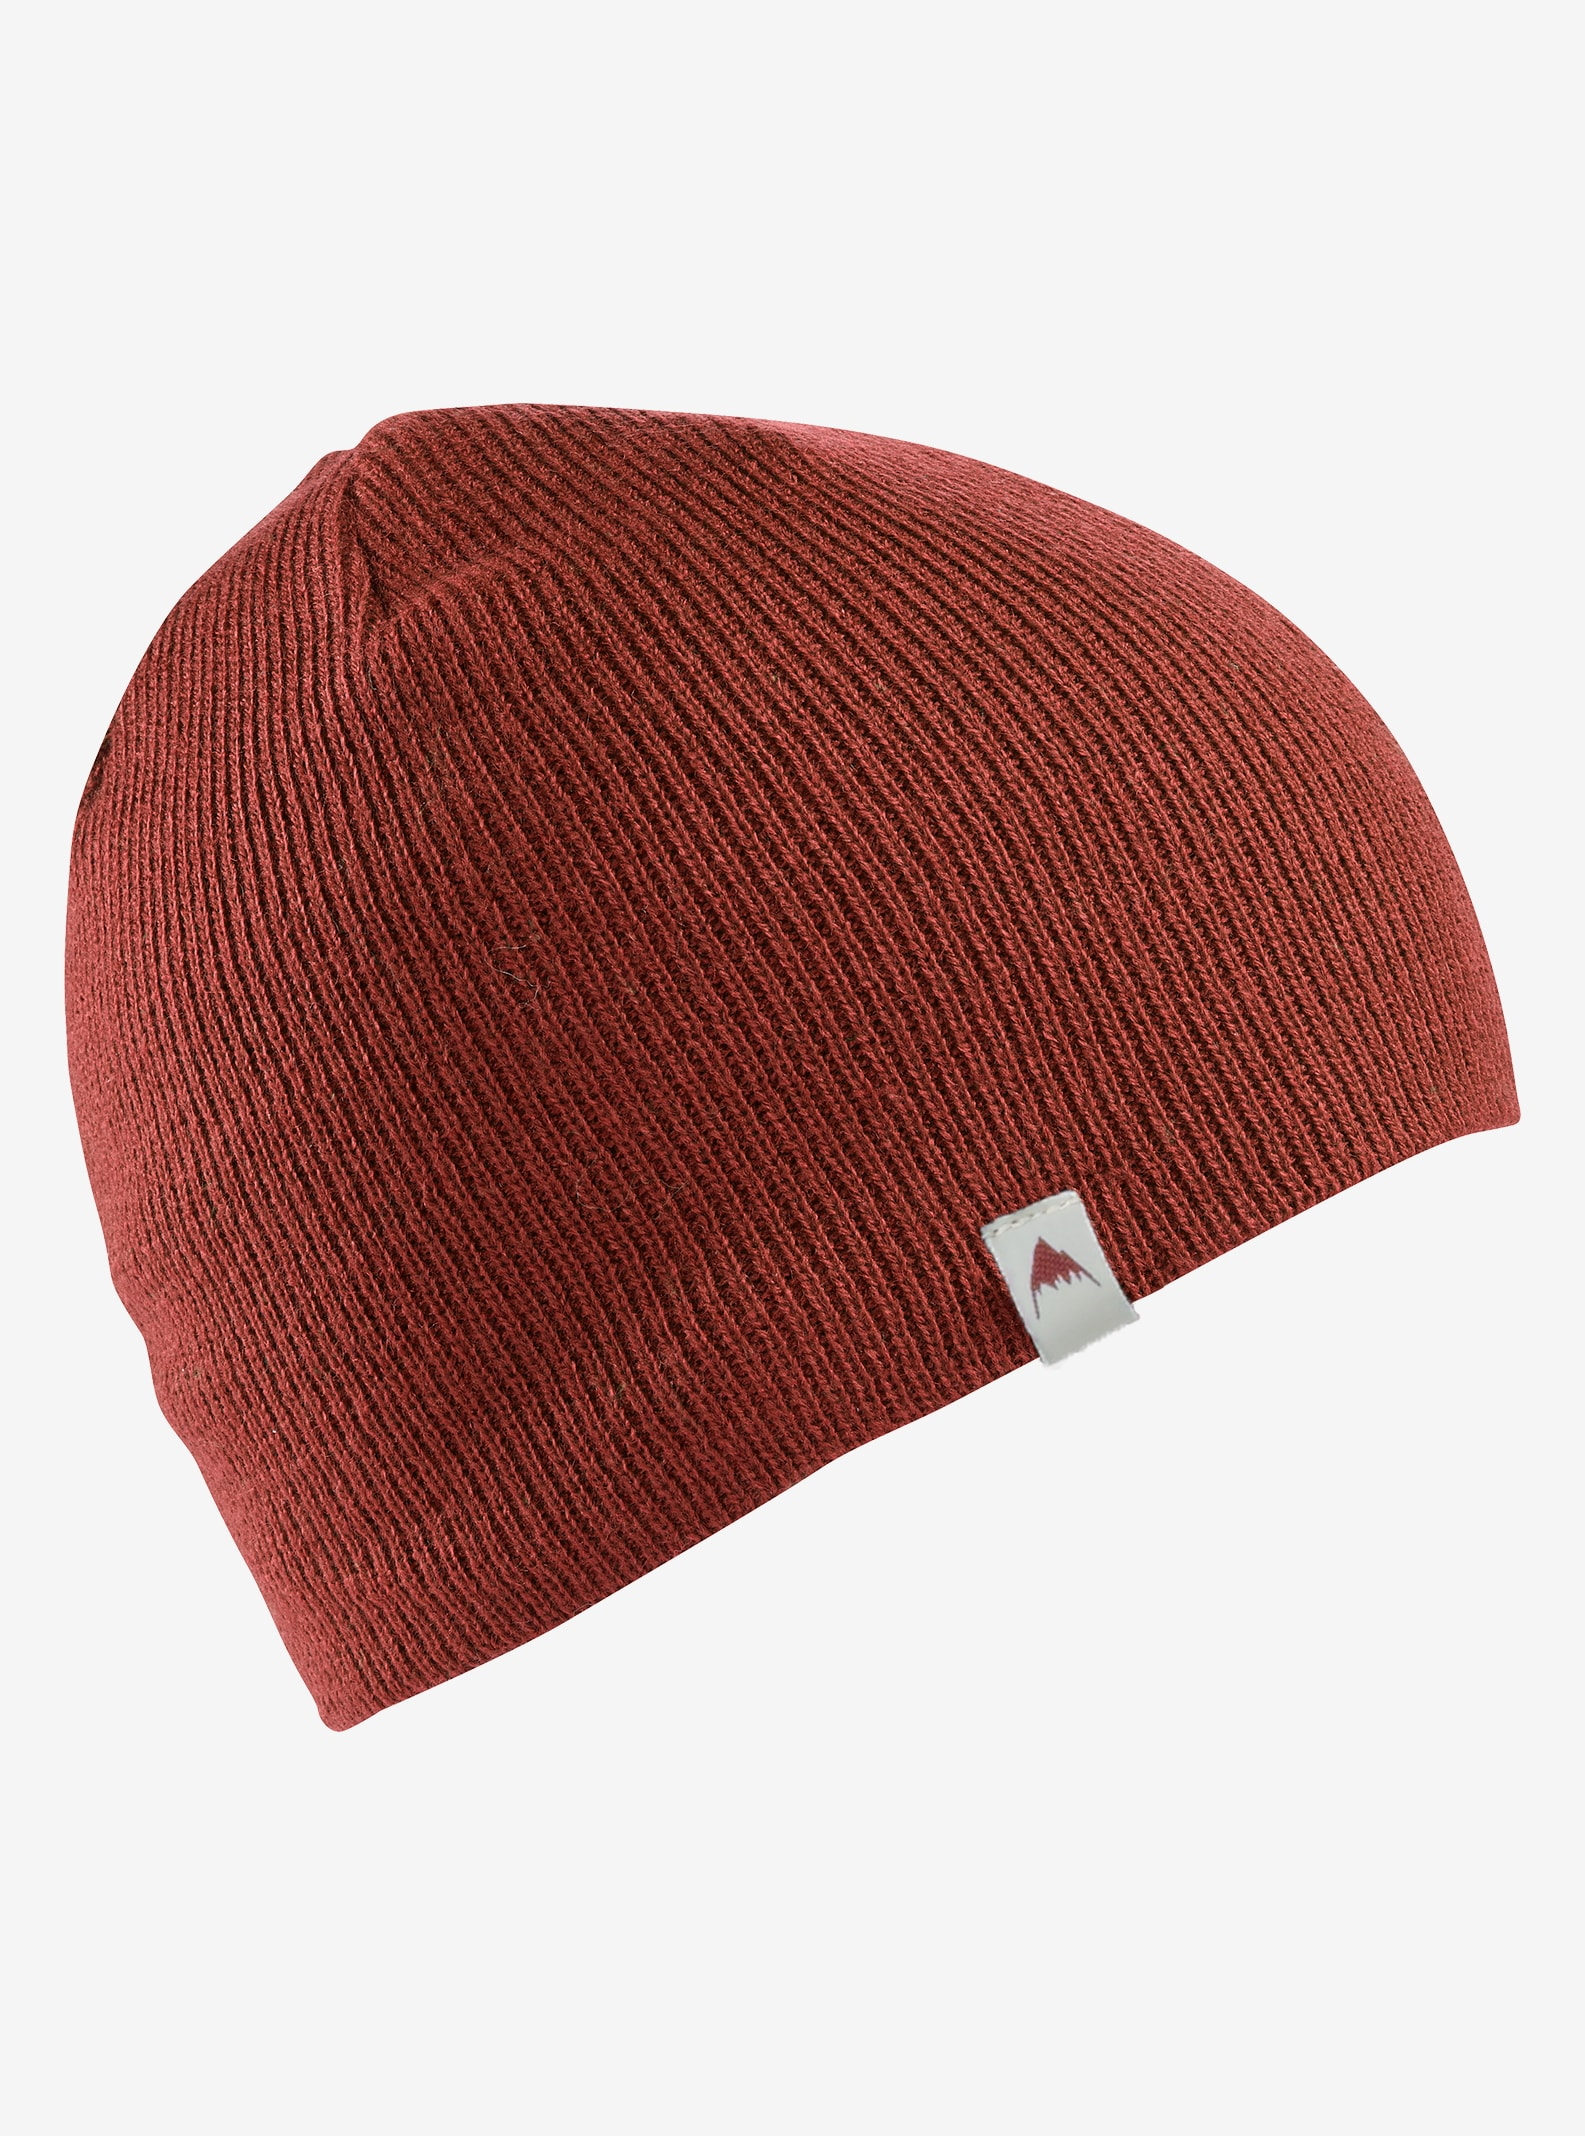 Boys' Burton All Day Long Beanie shown in Bitters